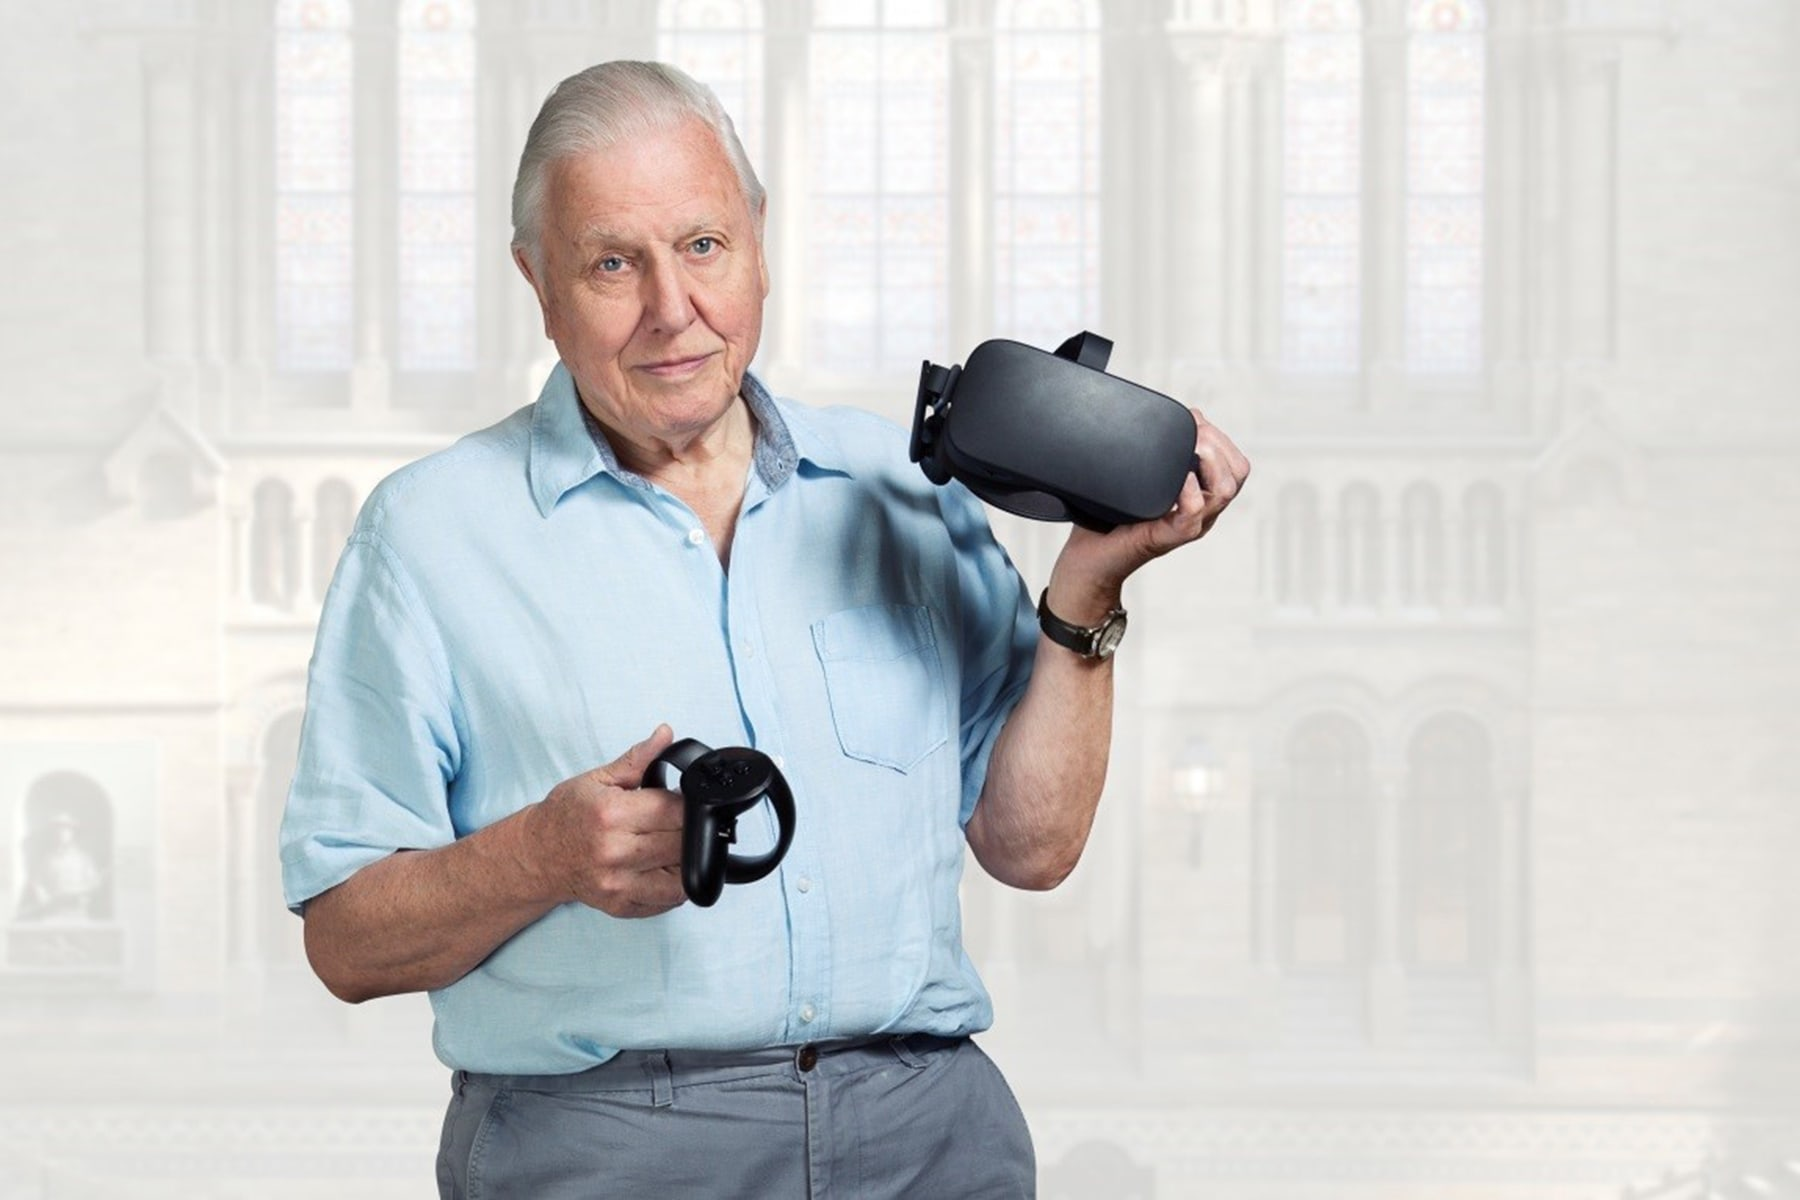 David Attenborough's hologram will help you study fossils in VR